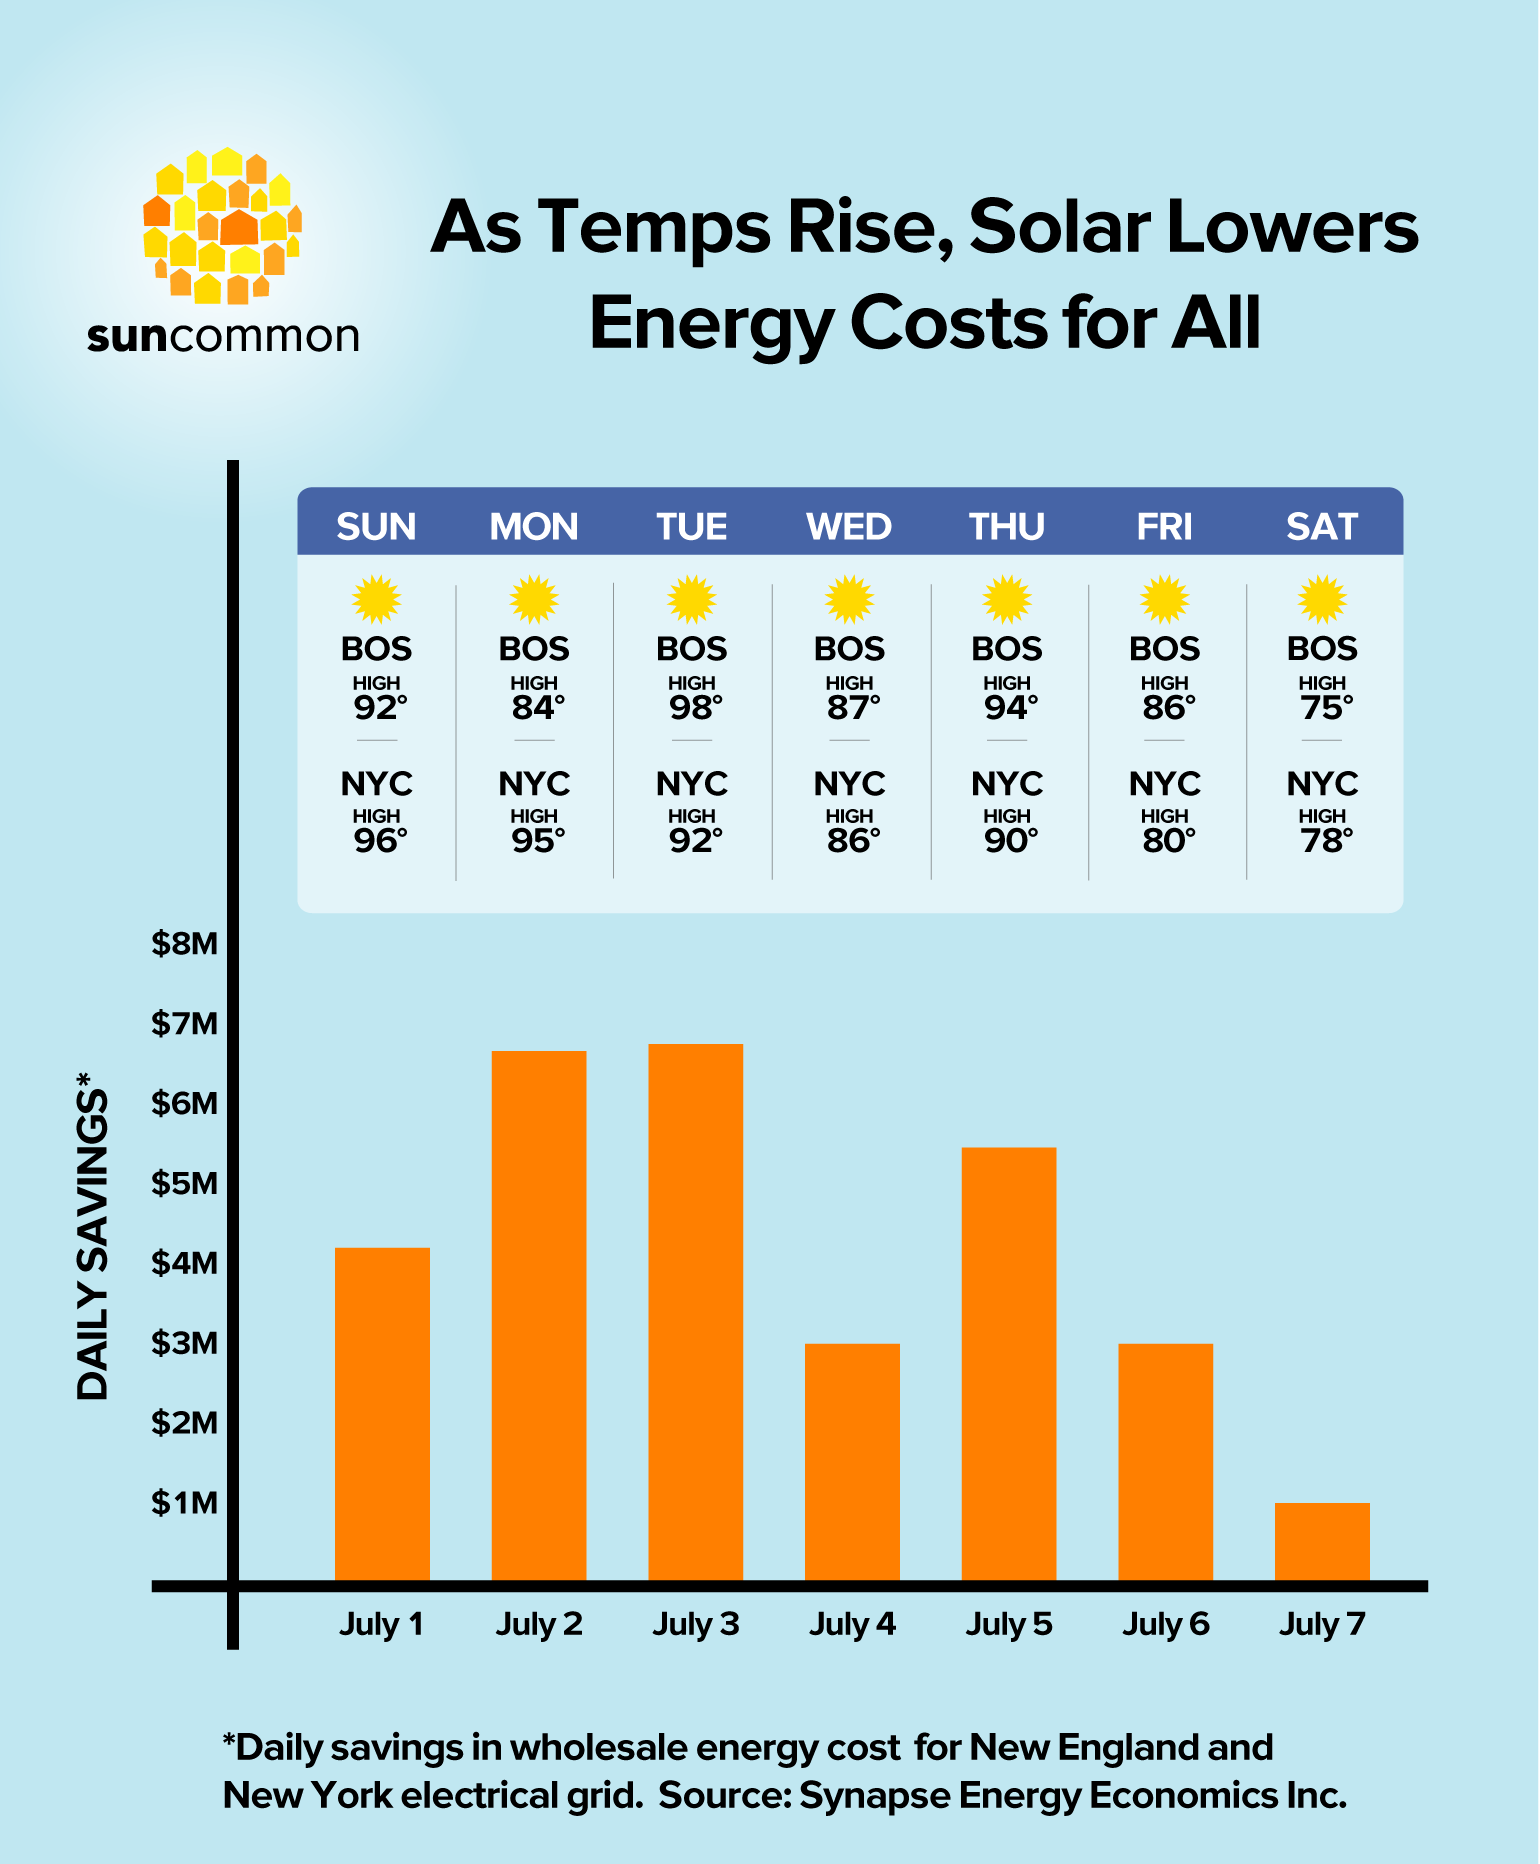 Regional Energy Savings for All during a Recent Heat Wave from Solar Power